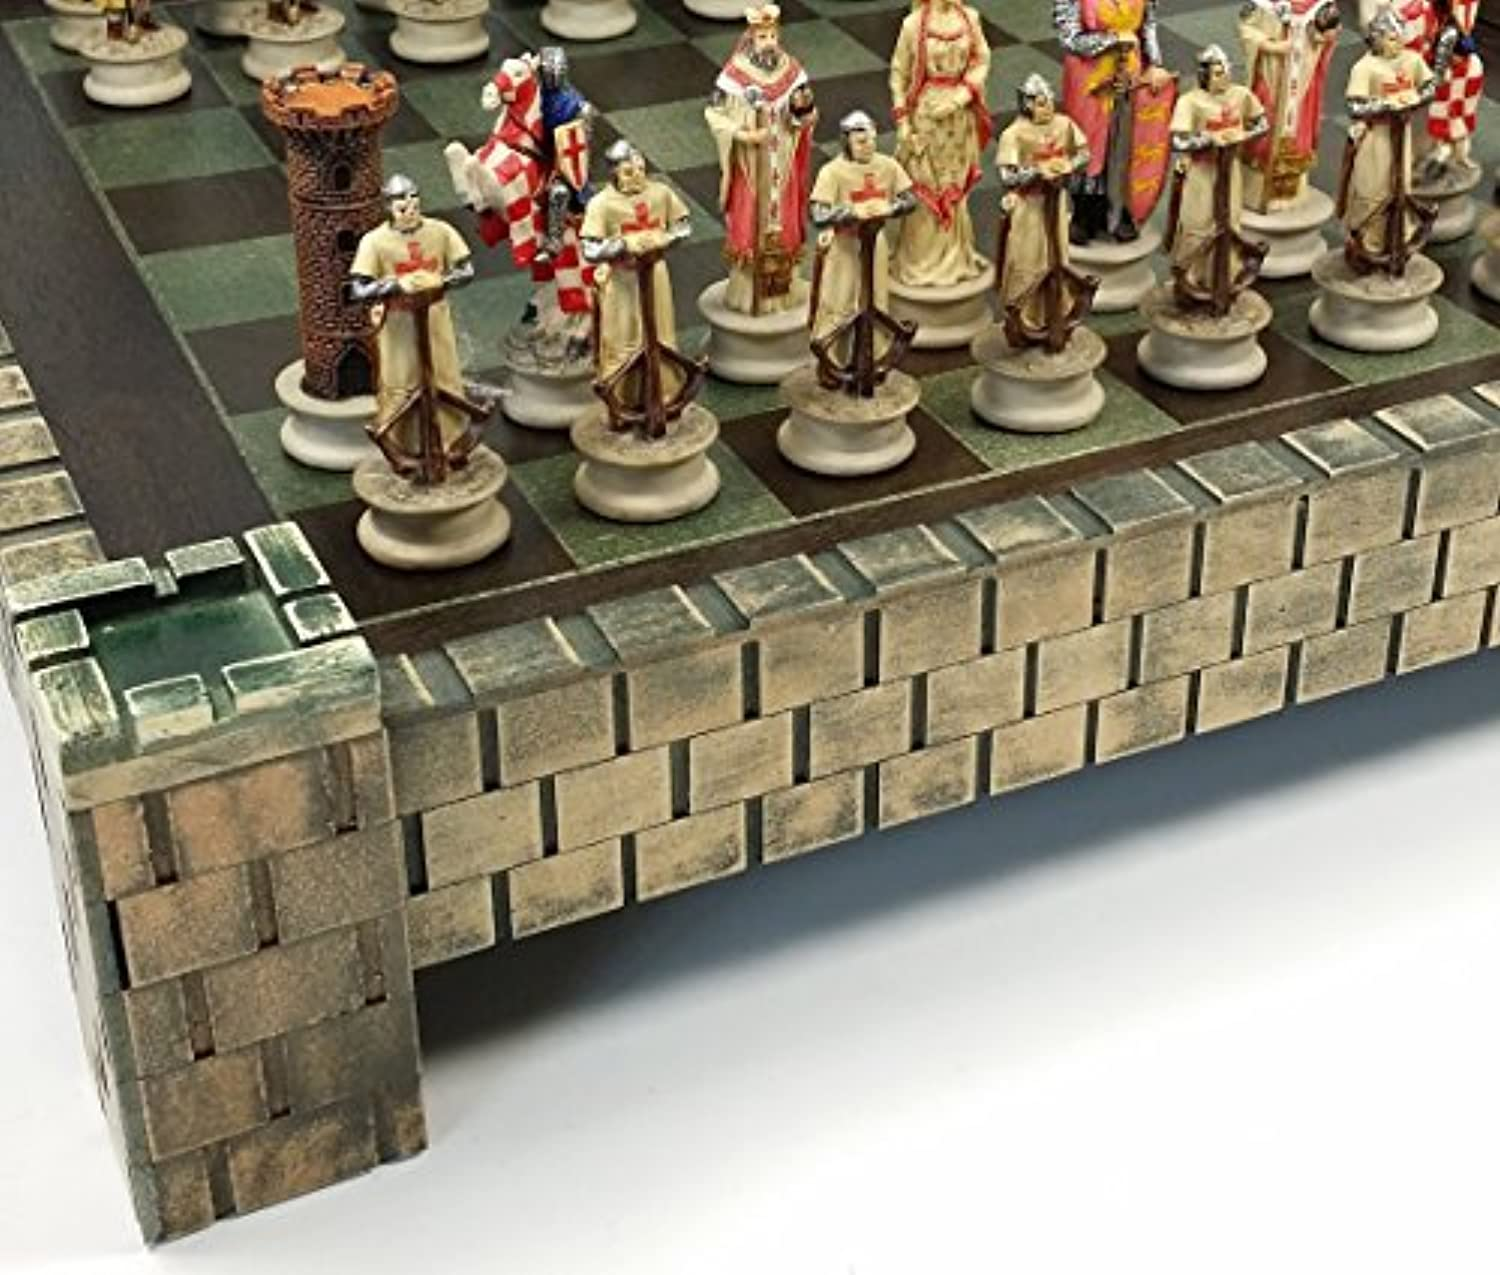 Medieval Times Crusades Arabian vs Christian Knights Chess Set w/ 17 Castle Board by HPL [並行輸入品]